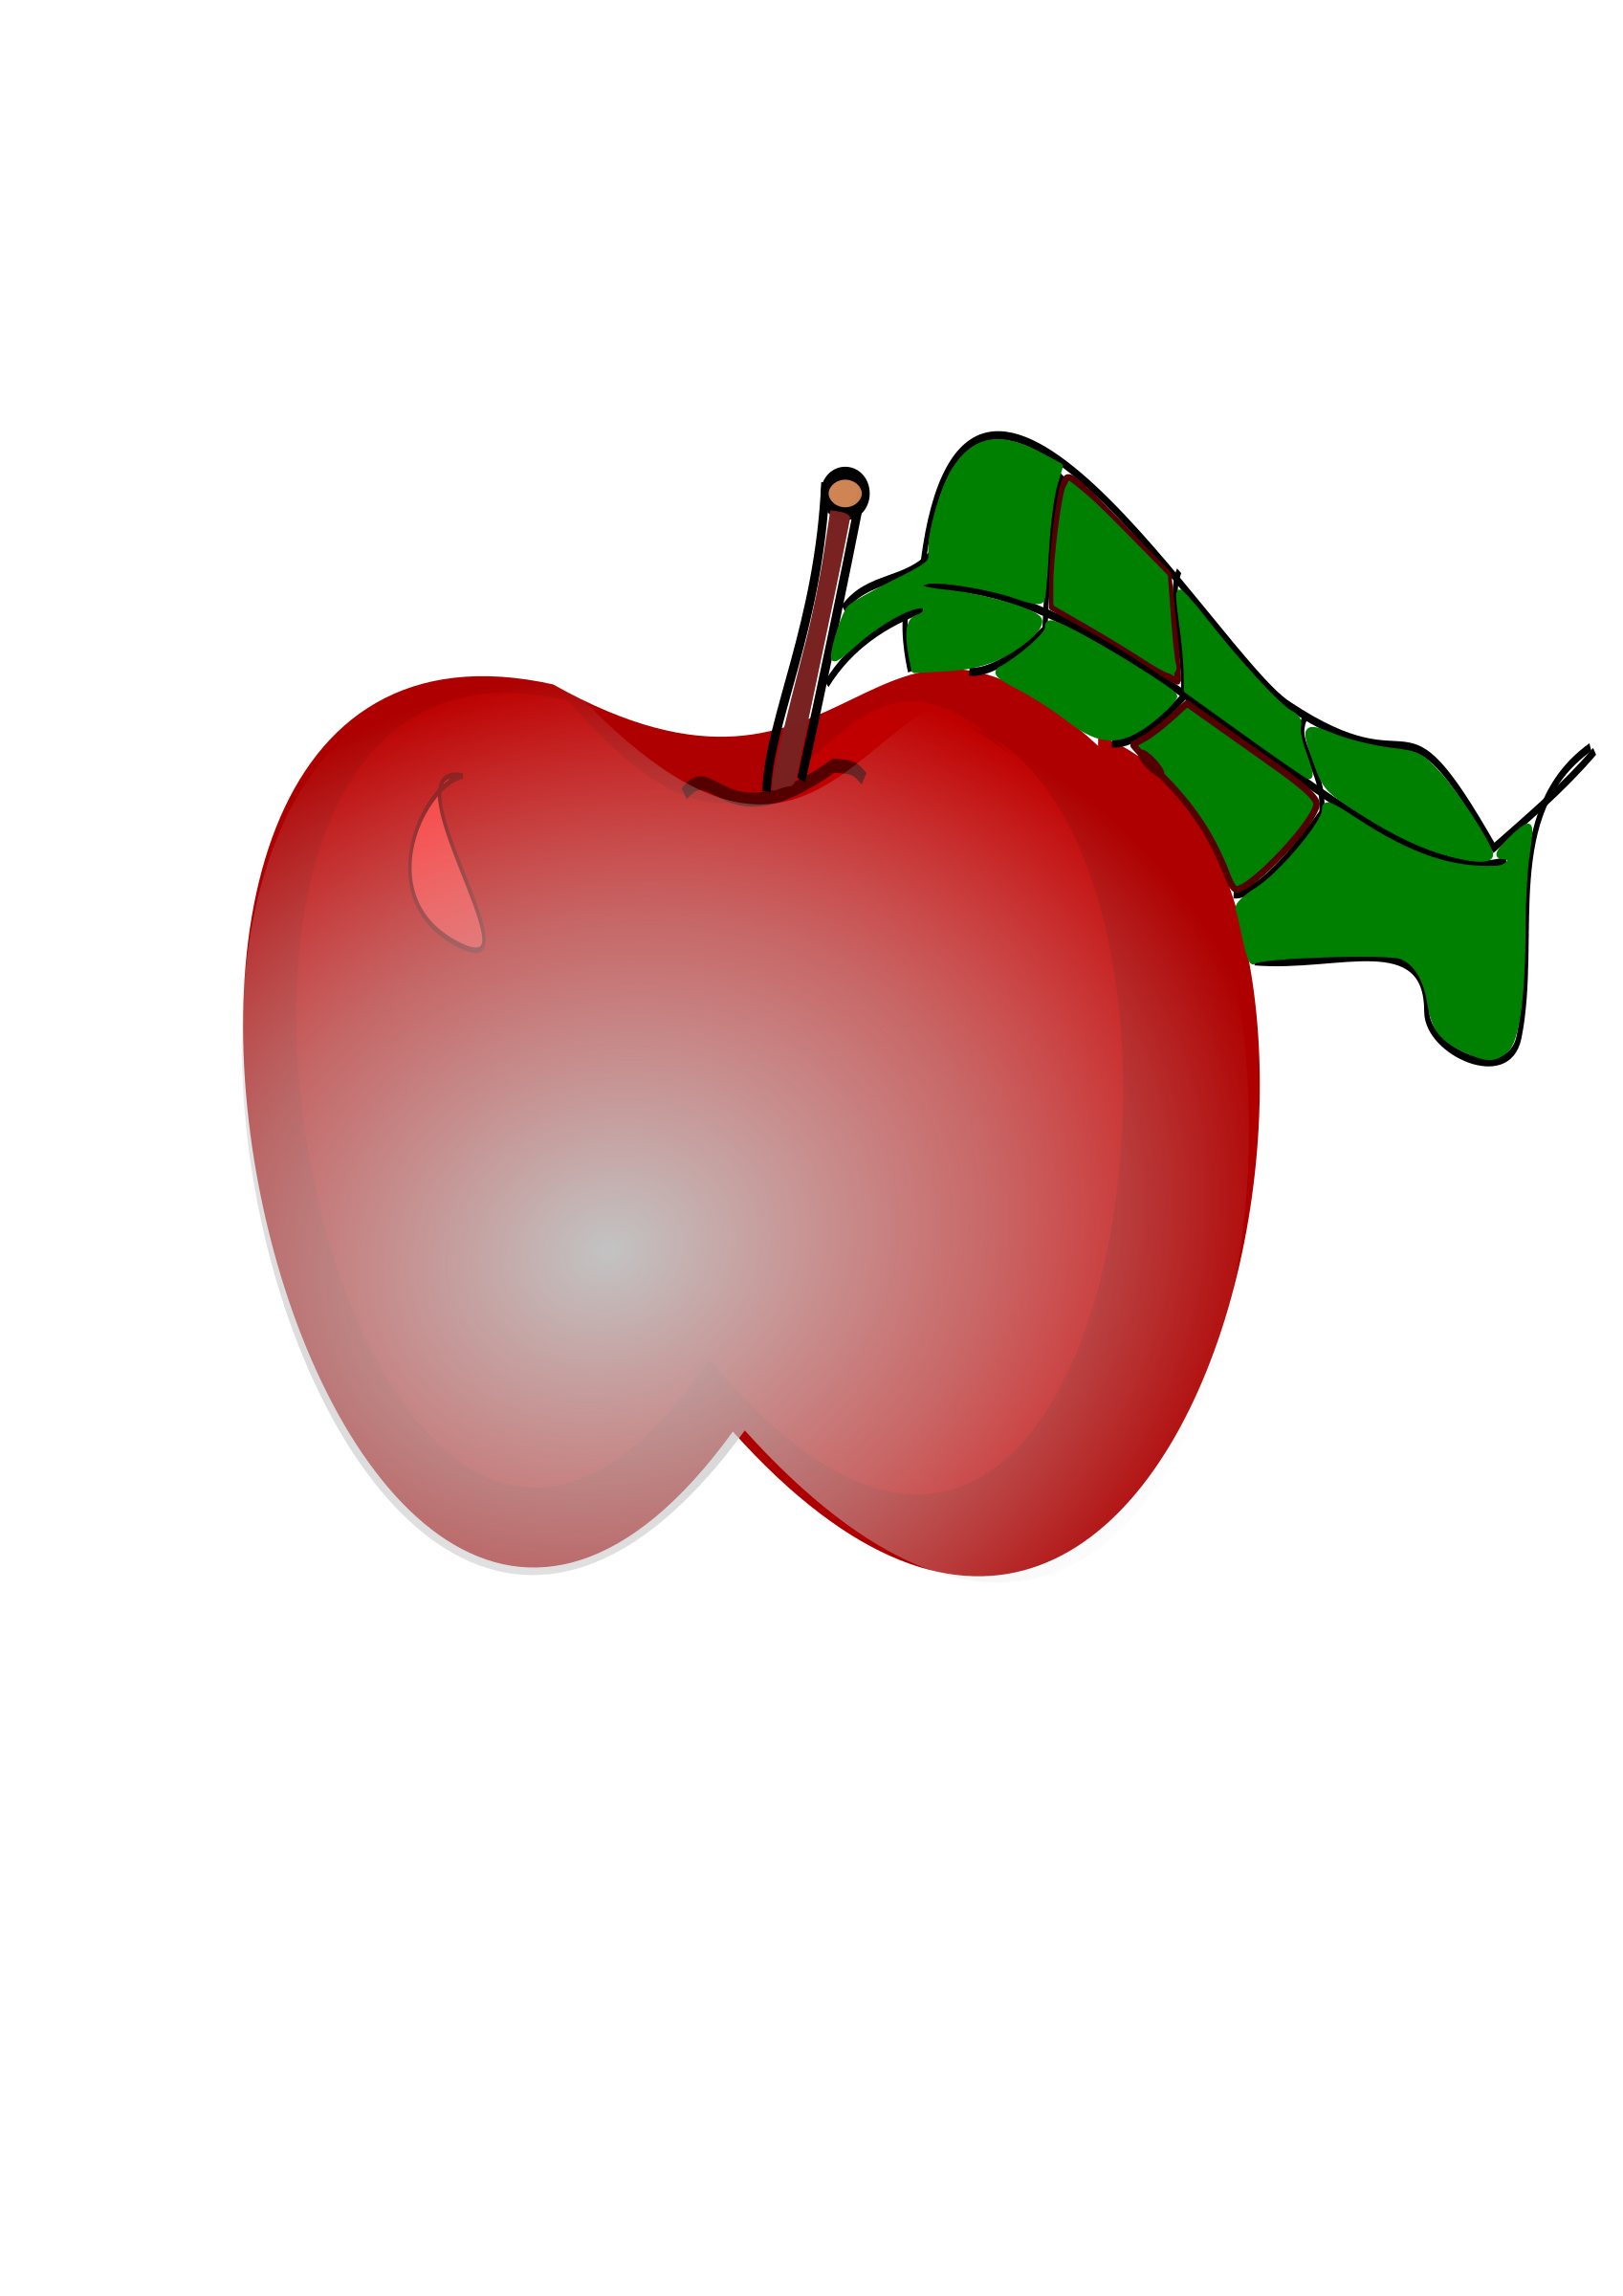 Apple by athithya